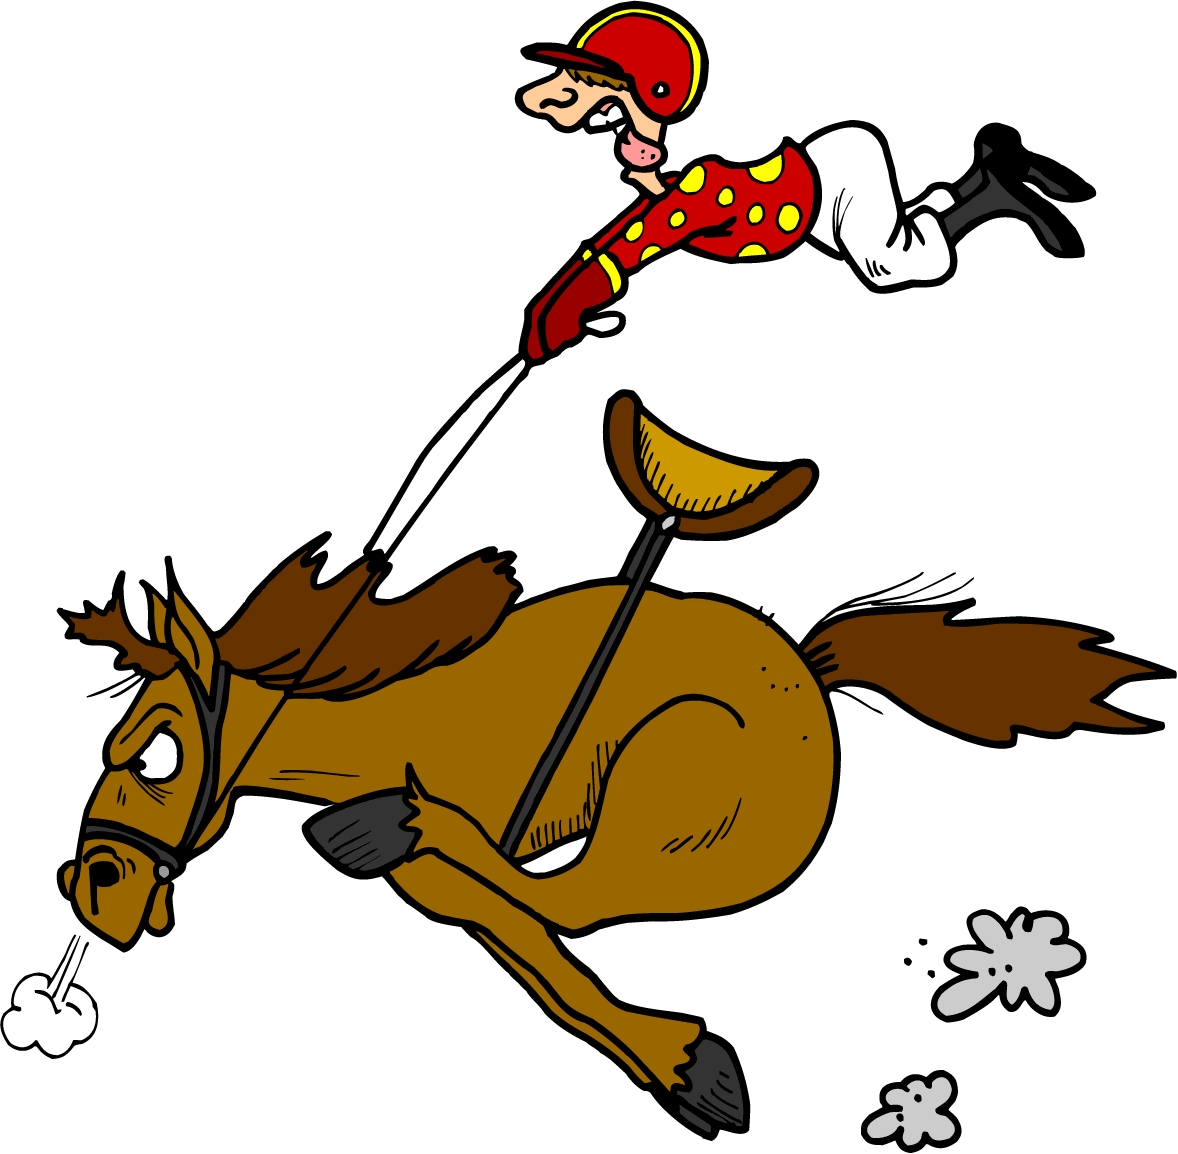 Horse Racing clipart Racing The Horse Clipart Clipart